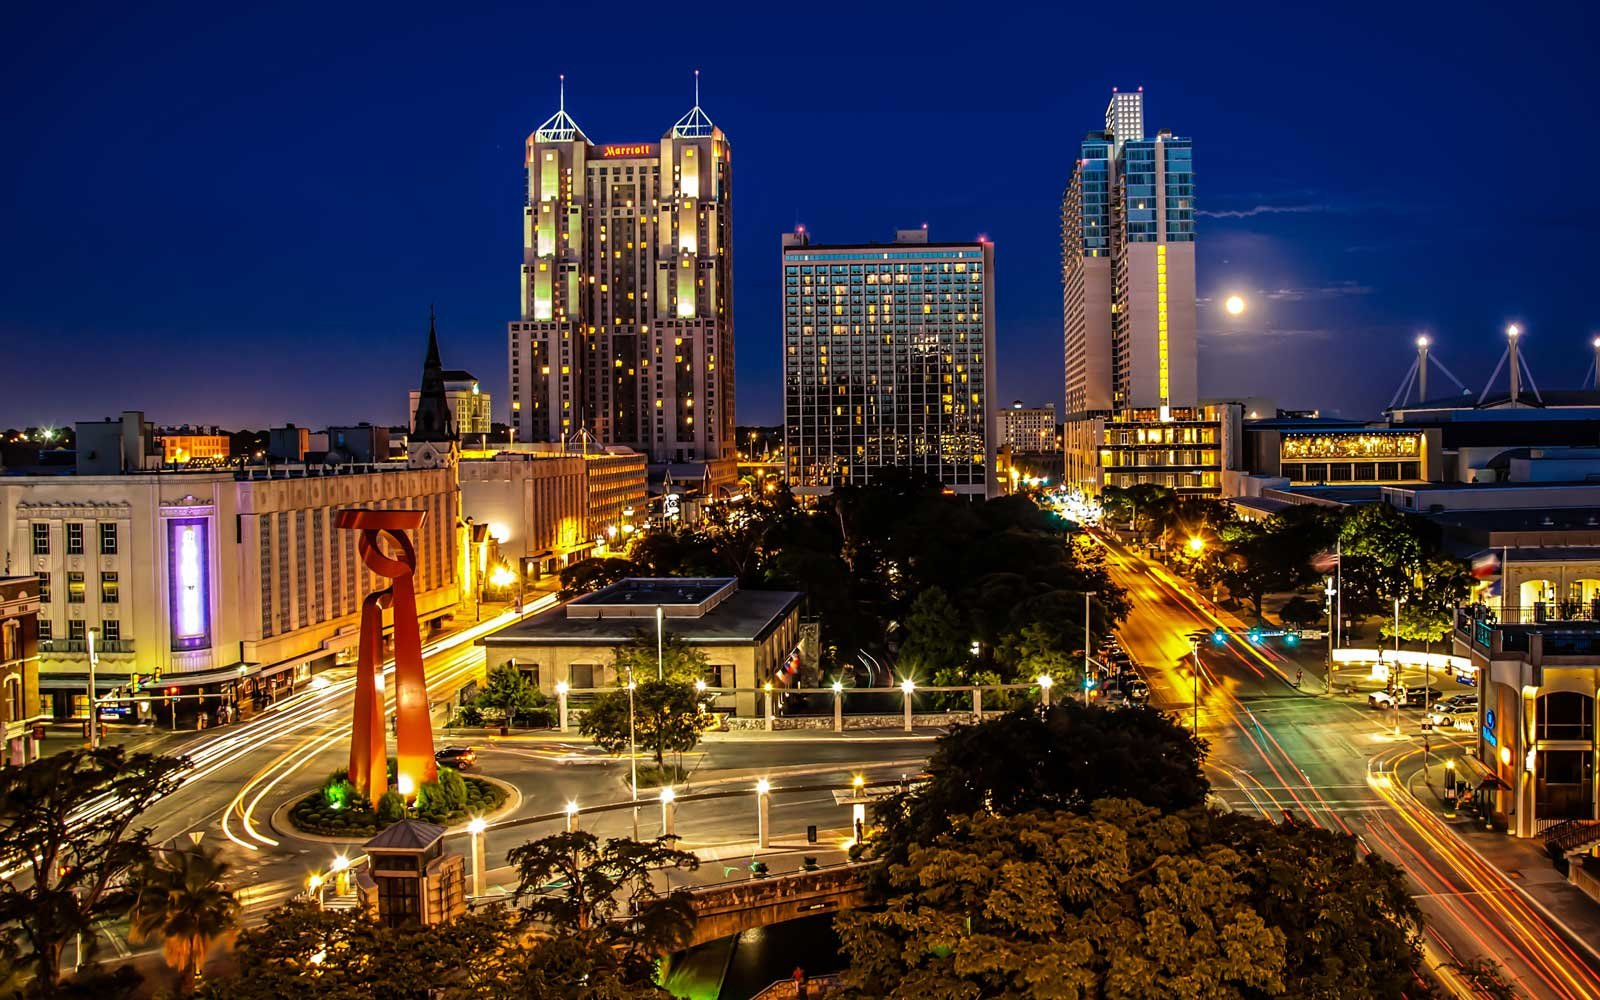 Downtown San Antonio, Texas at night